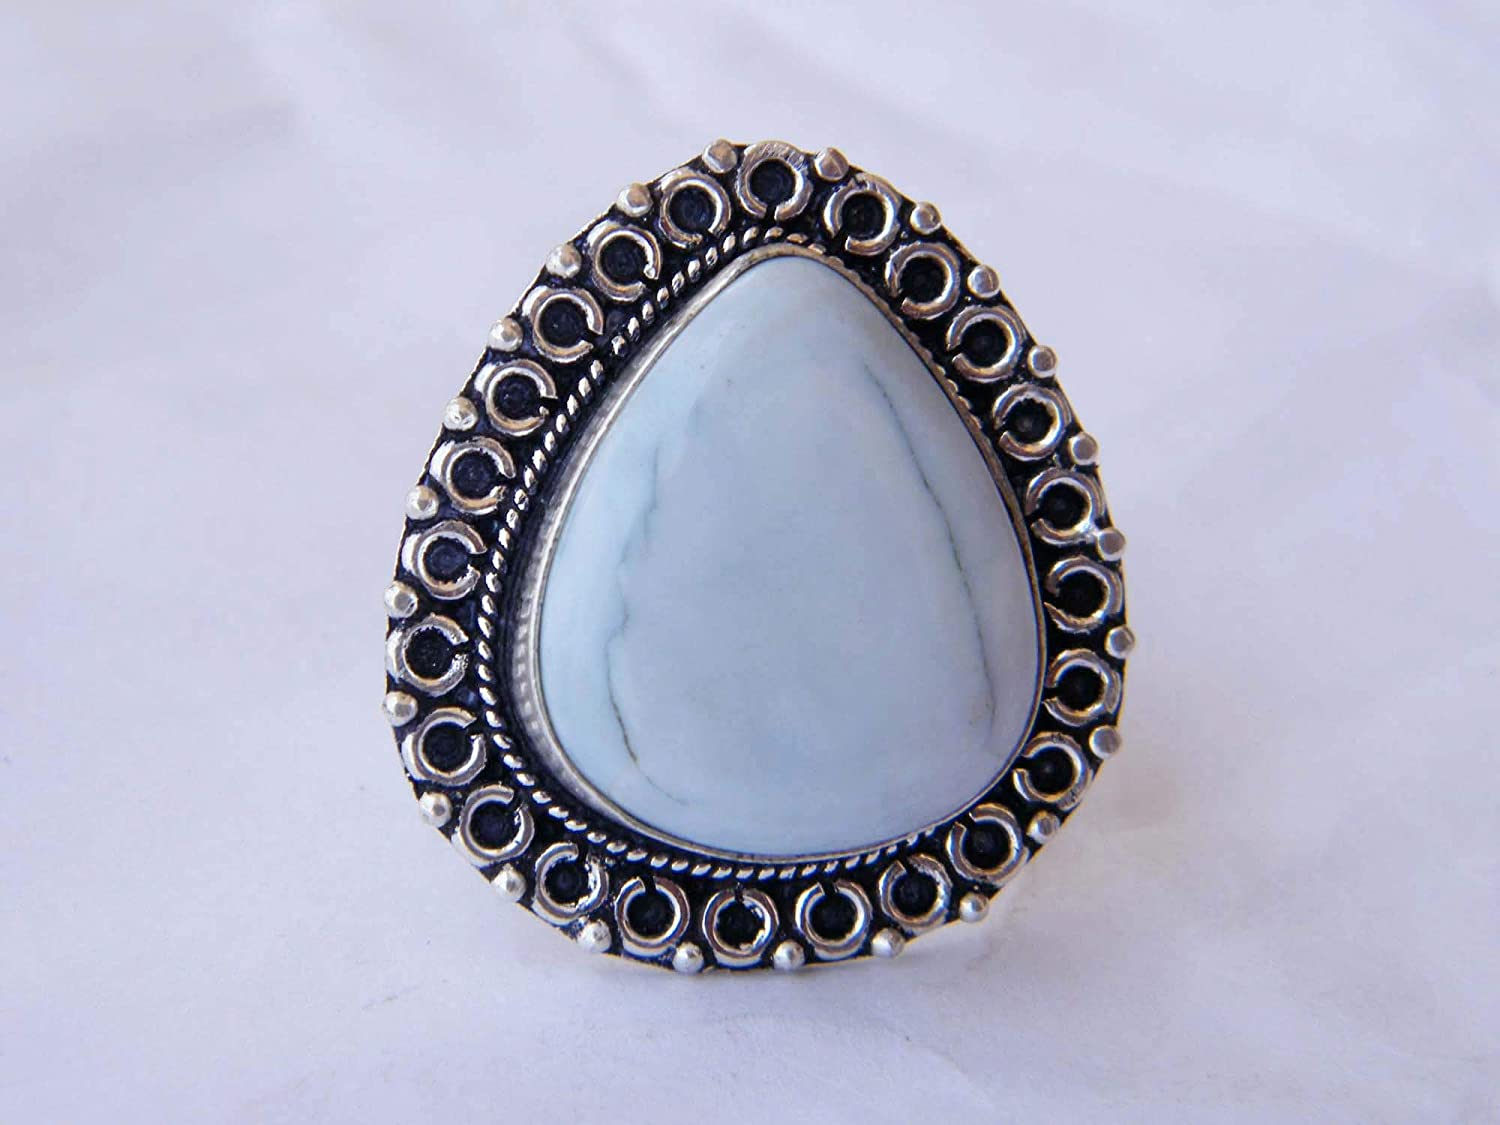 BRS-5281 Thebestjewellery Blue Opal cabochon Ring Women Jewelry, Size-10.25 USA Silver Plated Ring Handmade Ring